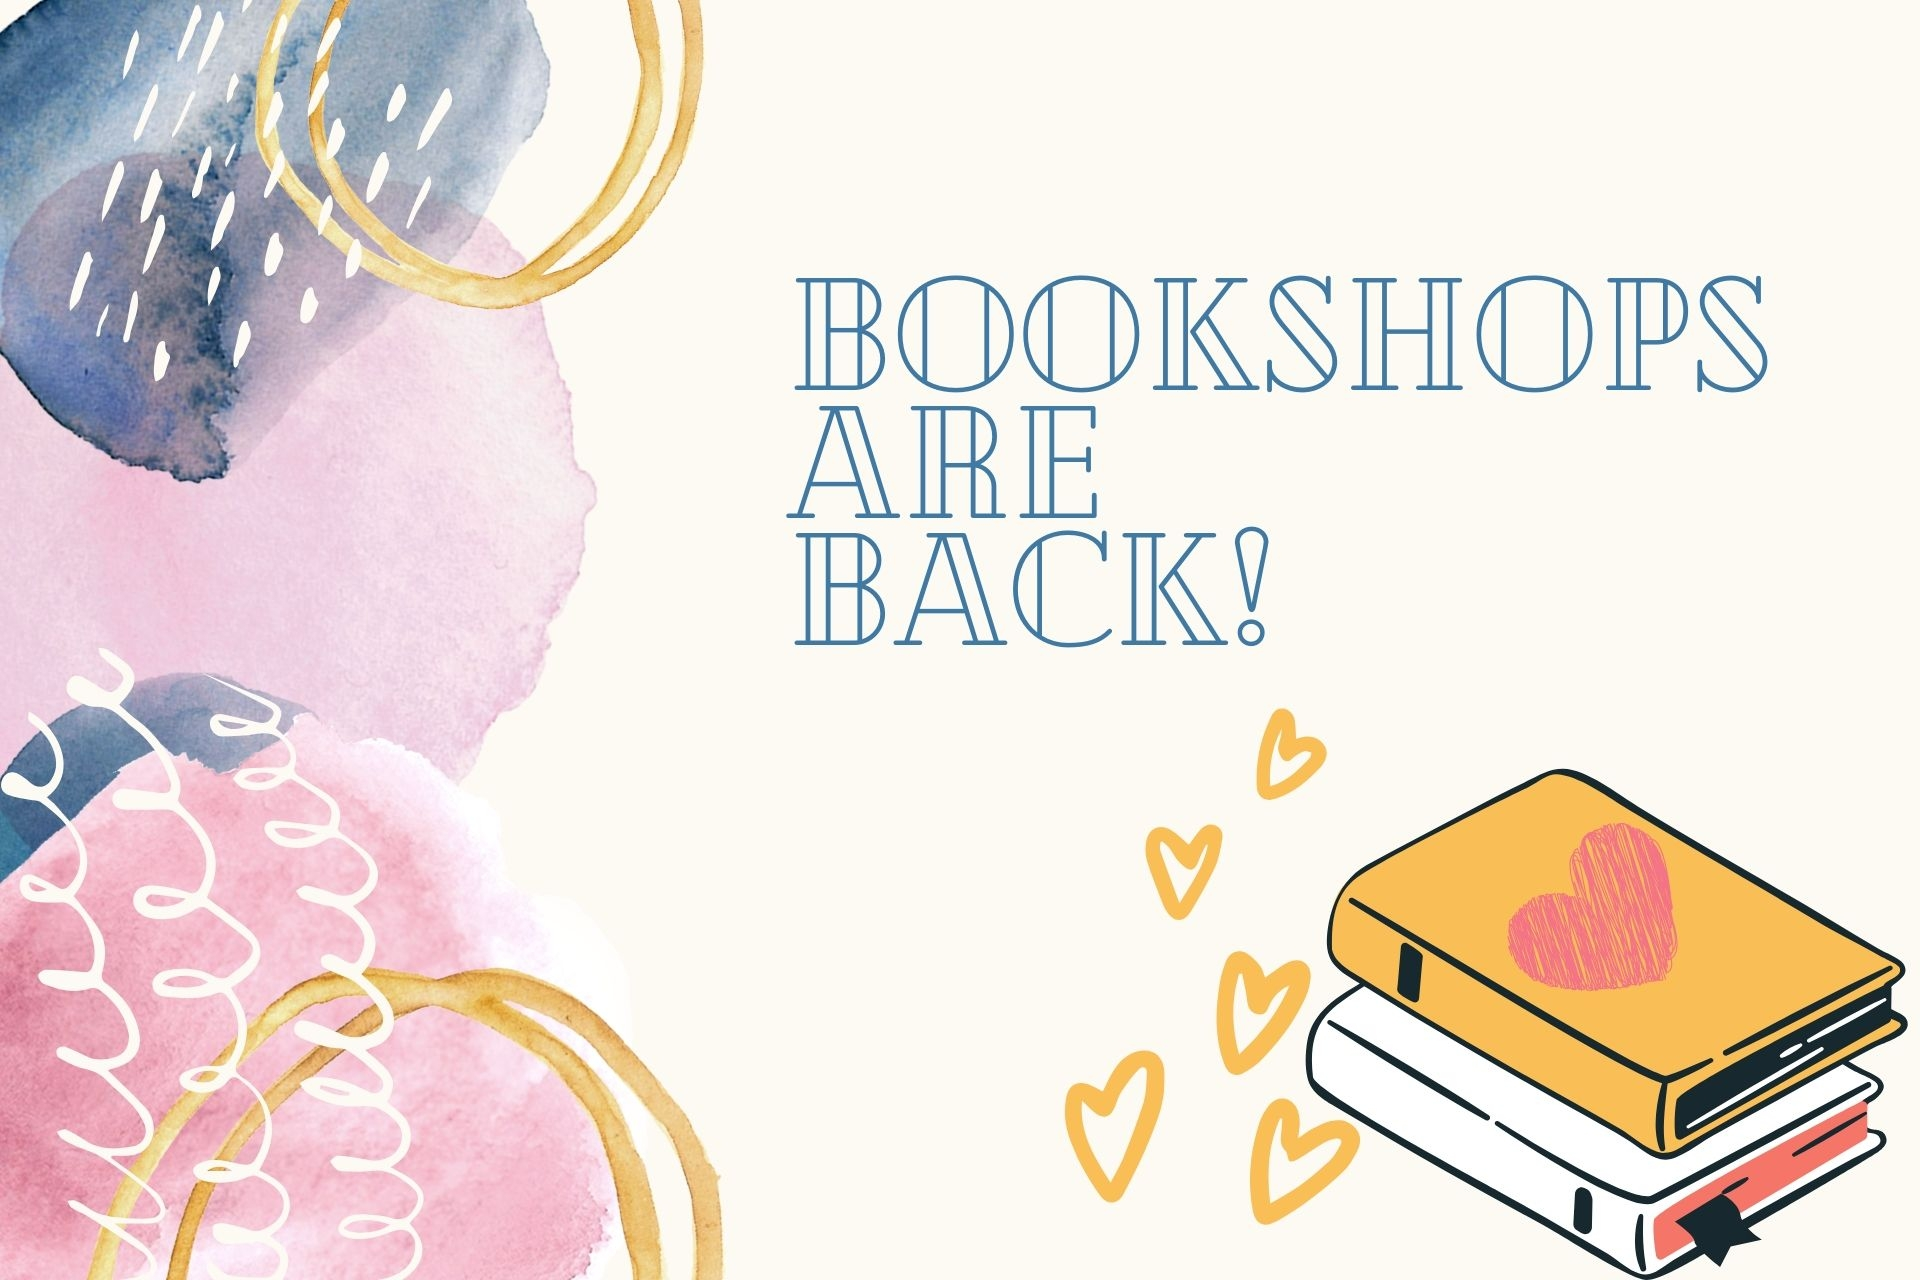 The Bookshops are Back!